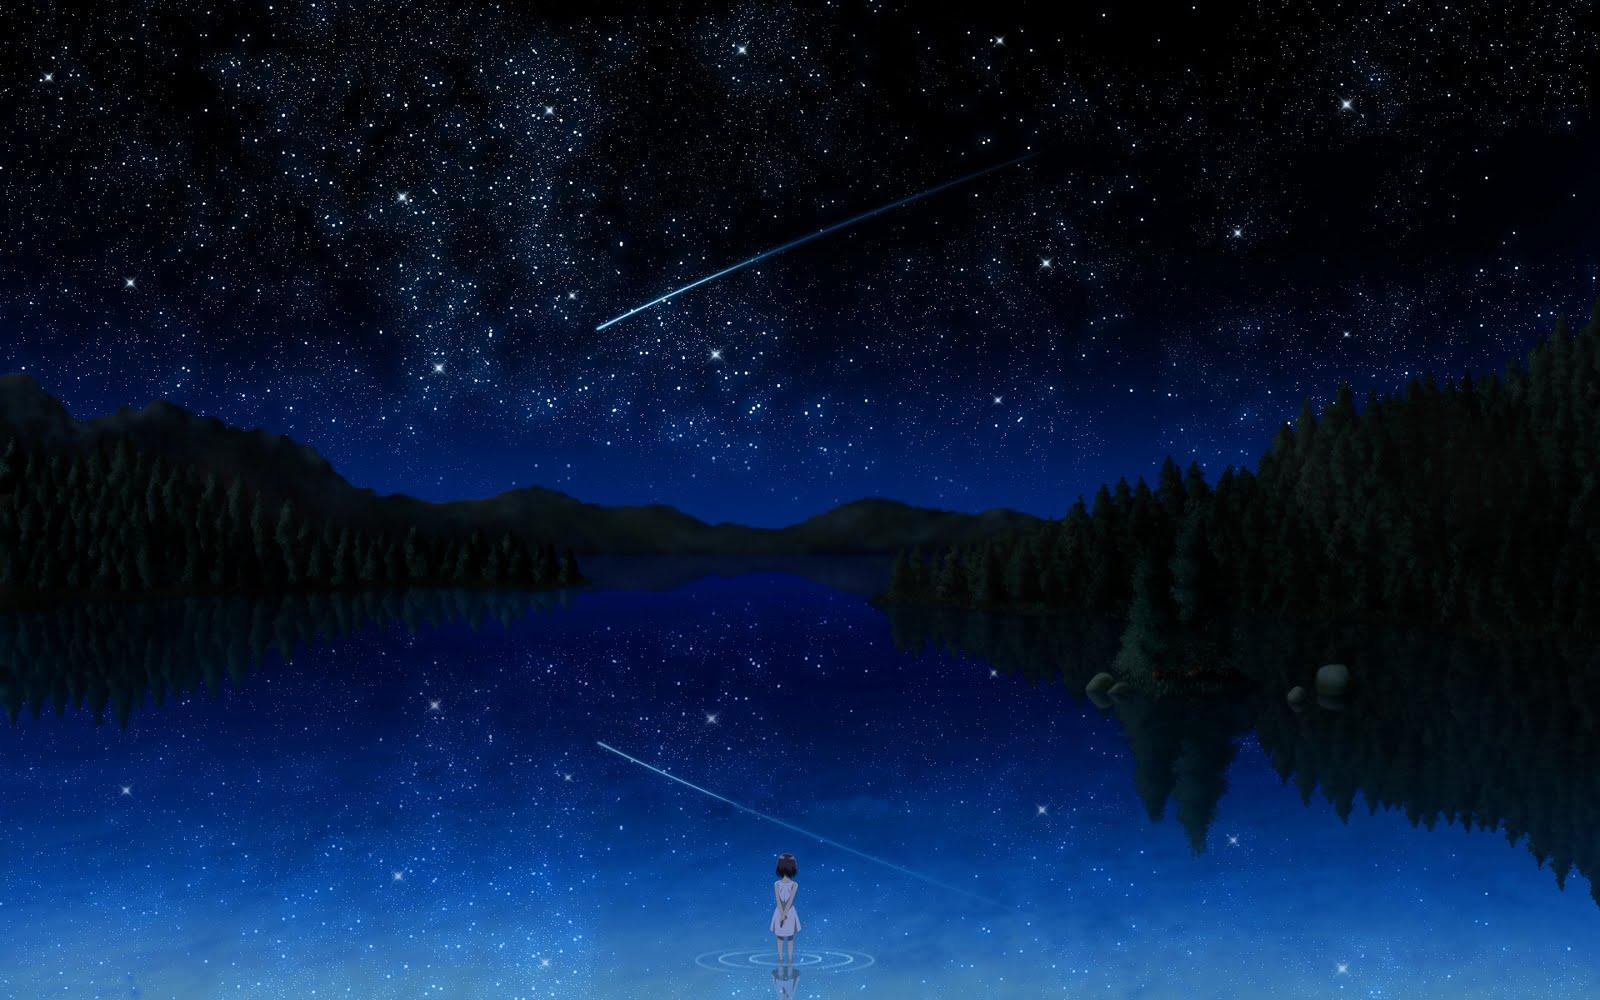 You look up at the starry night sky and see a shooting star. You make a wish. What did you wish for?